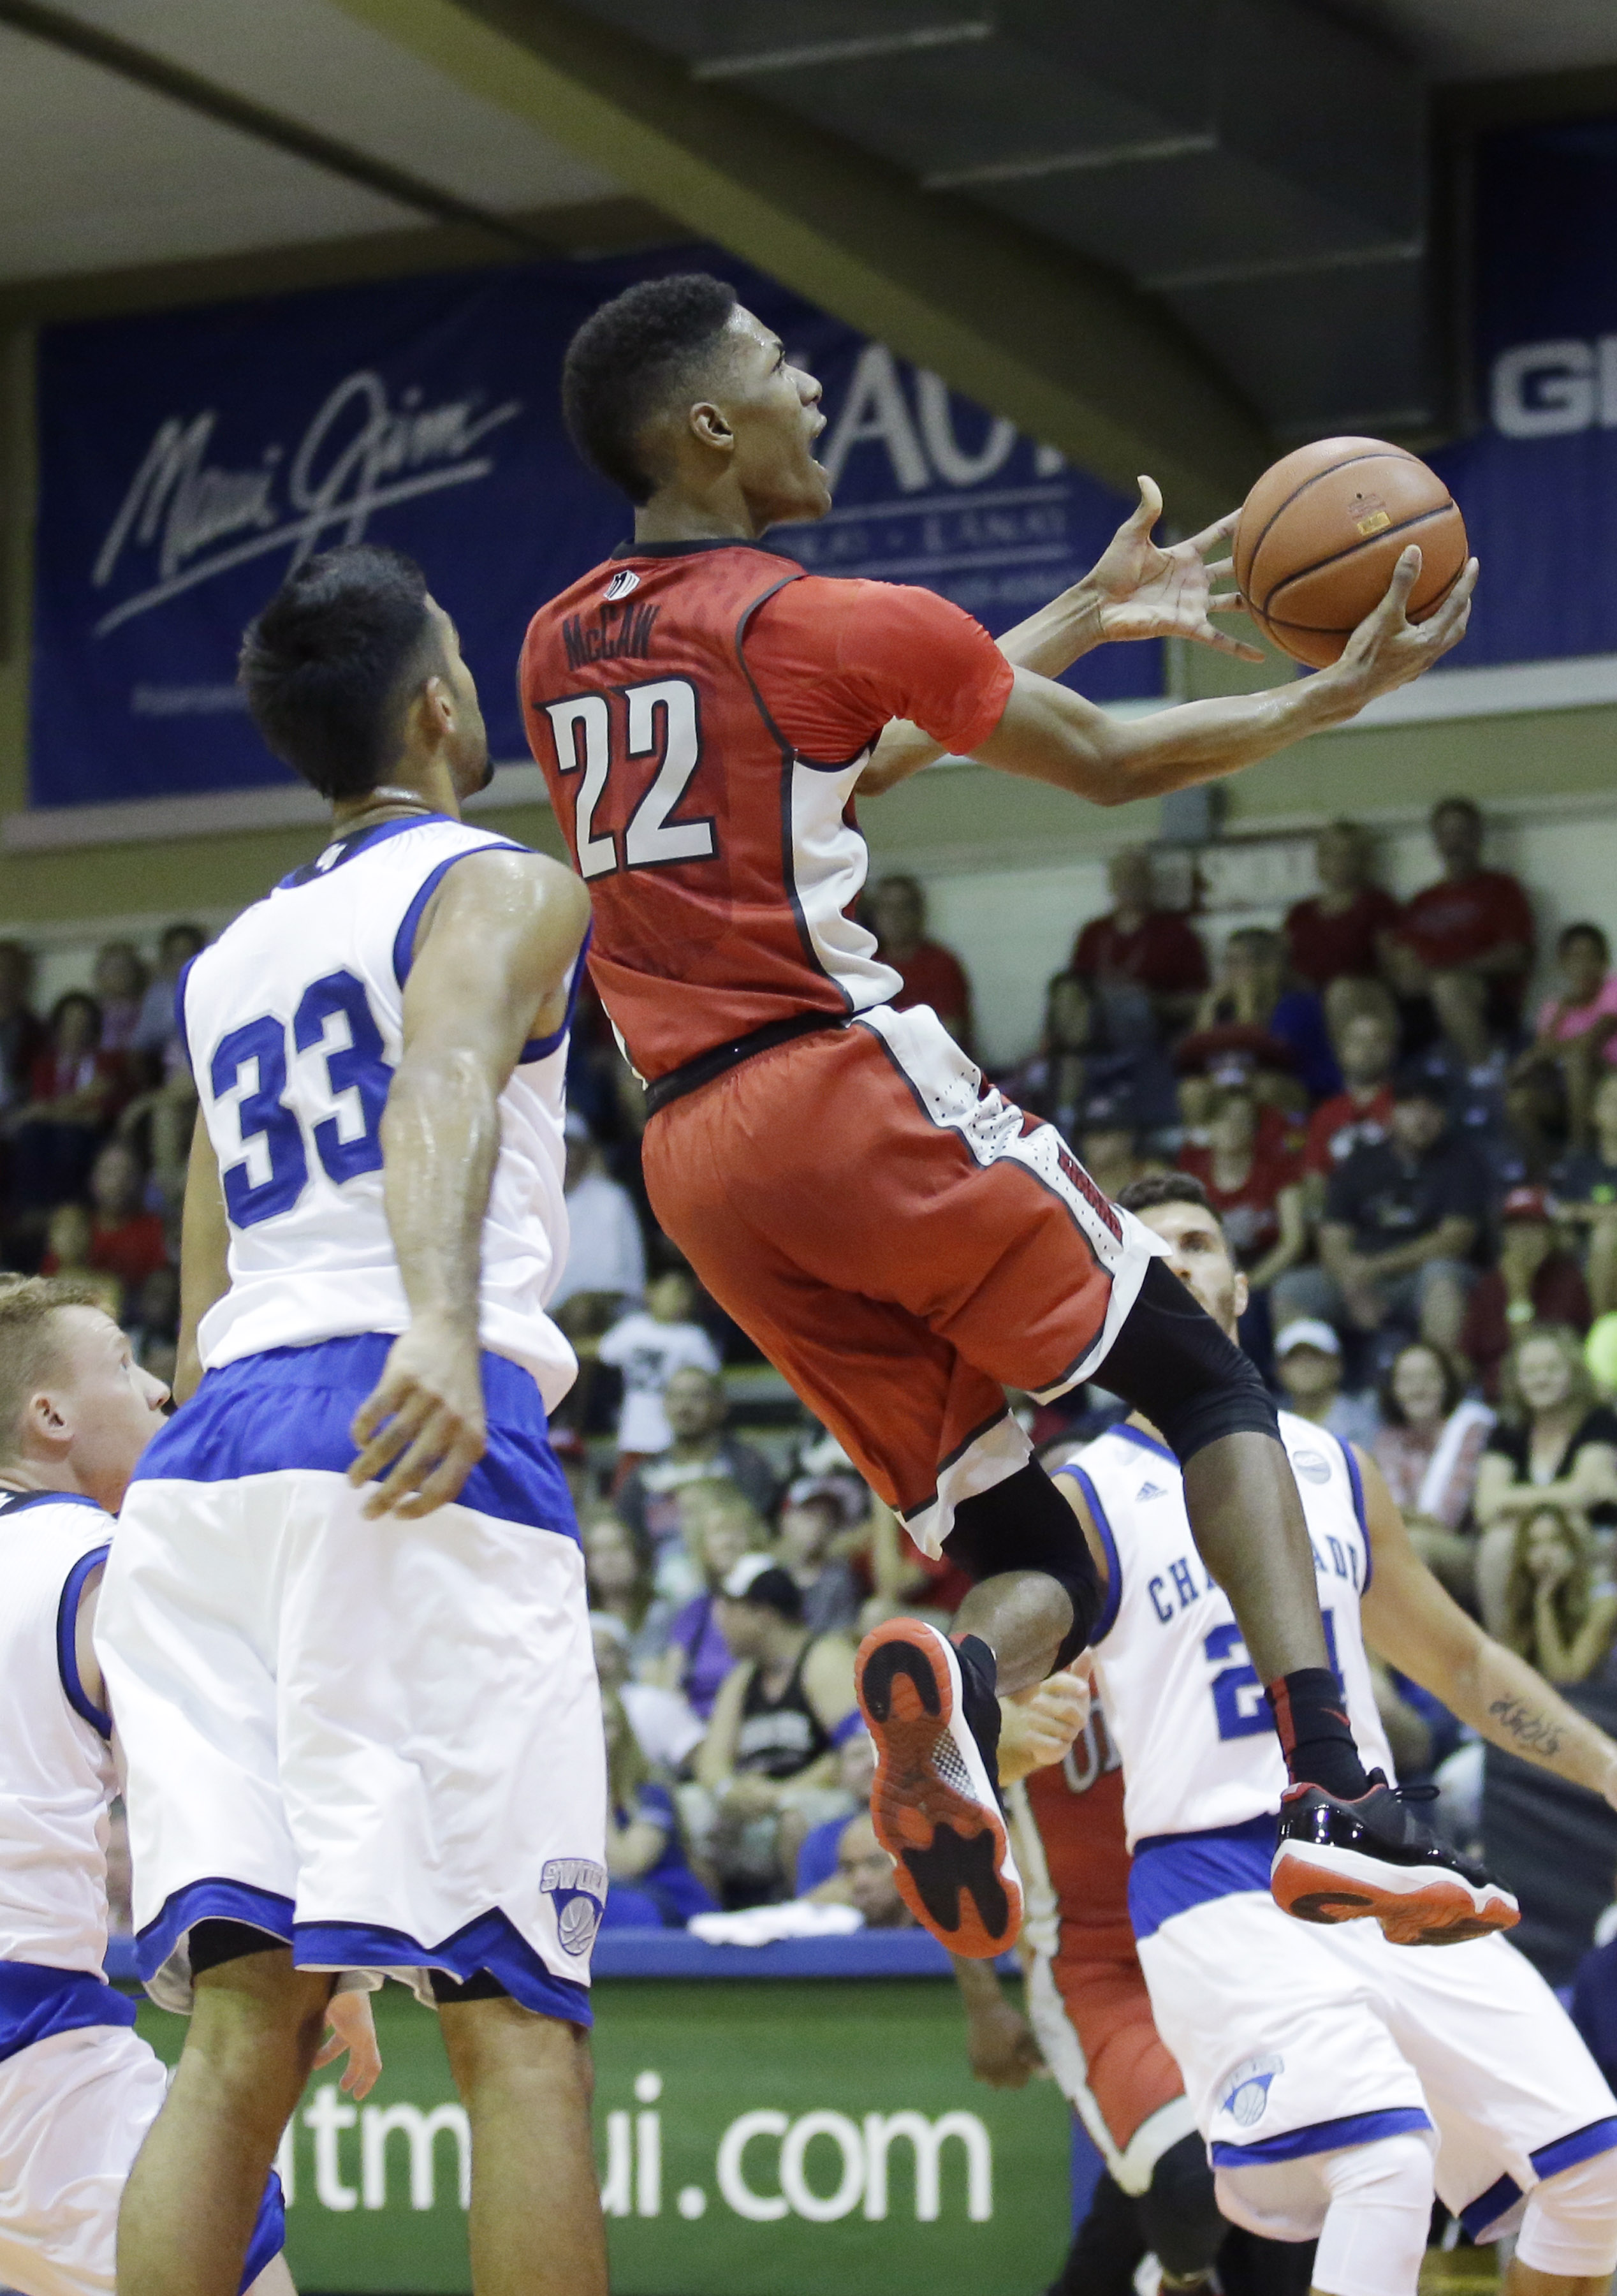 UNLV guard Patrick McCaw (22) goes to the basket as Chaminade guard Kiran Shastri (33) looks on in the first half during an NCAA college basketball game in the second round of the Maui Invitational Tournament, Tuesday, Nov. 24, 2015, in Lahaina, Hawaii.